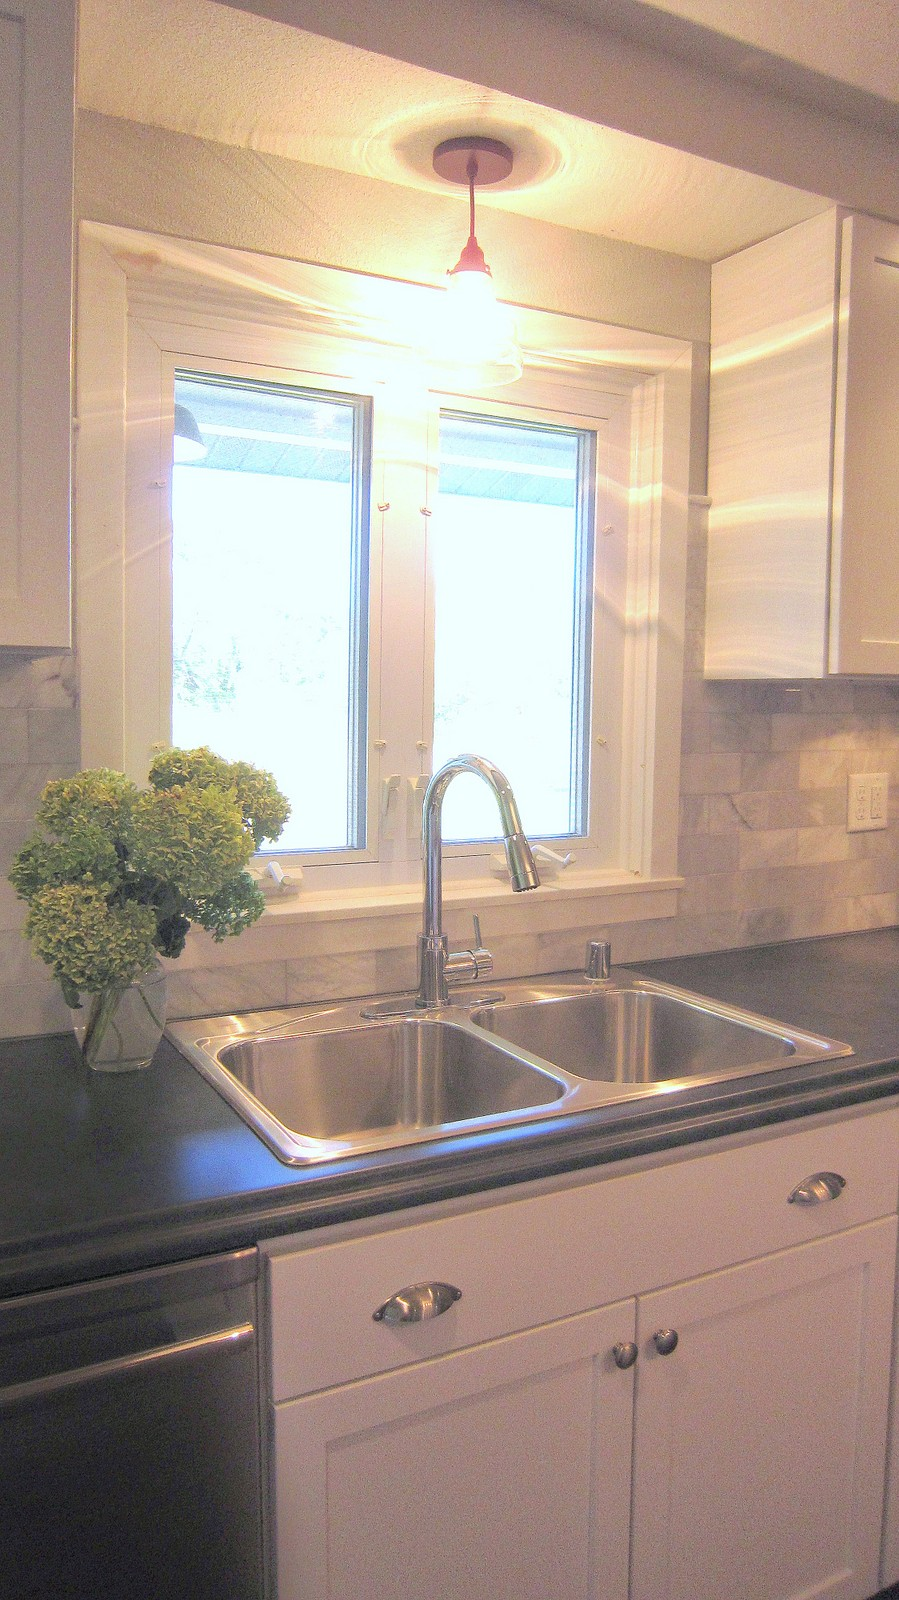 BEFORE & AFTER: Affordable Farmhouse Kitchen Renovation - Gray and White - Granite and Laminate Counters - Marble Backsplash